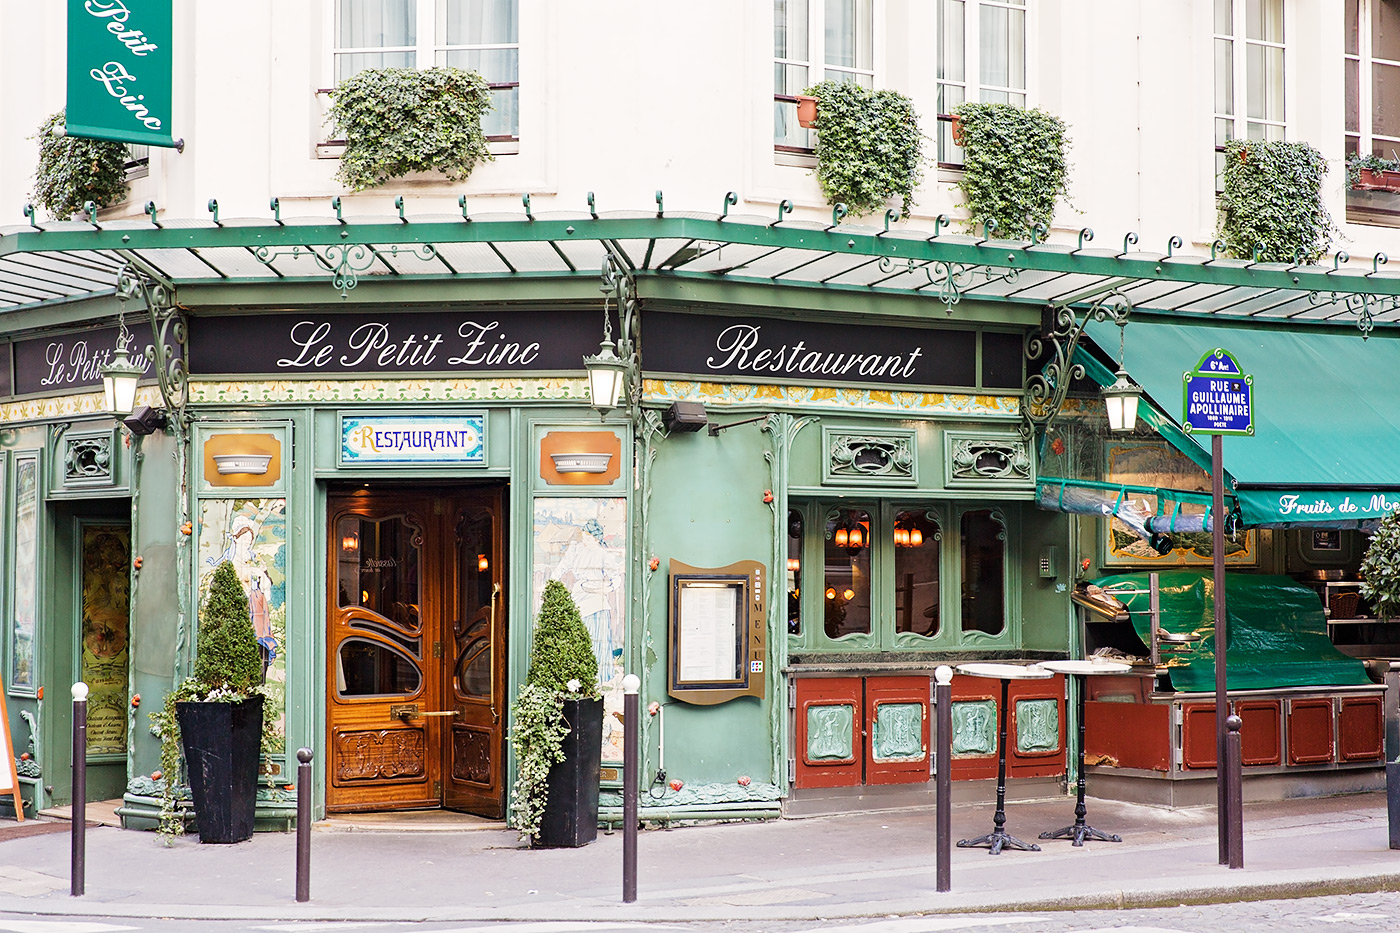 Wondrous Paris French Le Petit Zinc Paris Restaurants French Restaurants By Le Petit Zinc Restaurant French Meaning Your bark post Cute In French